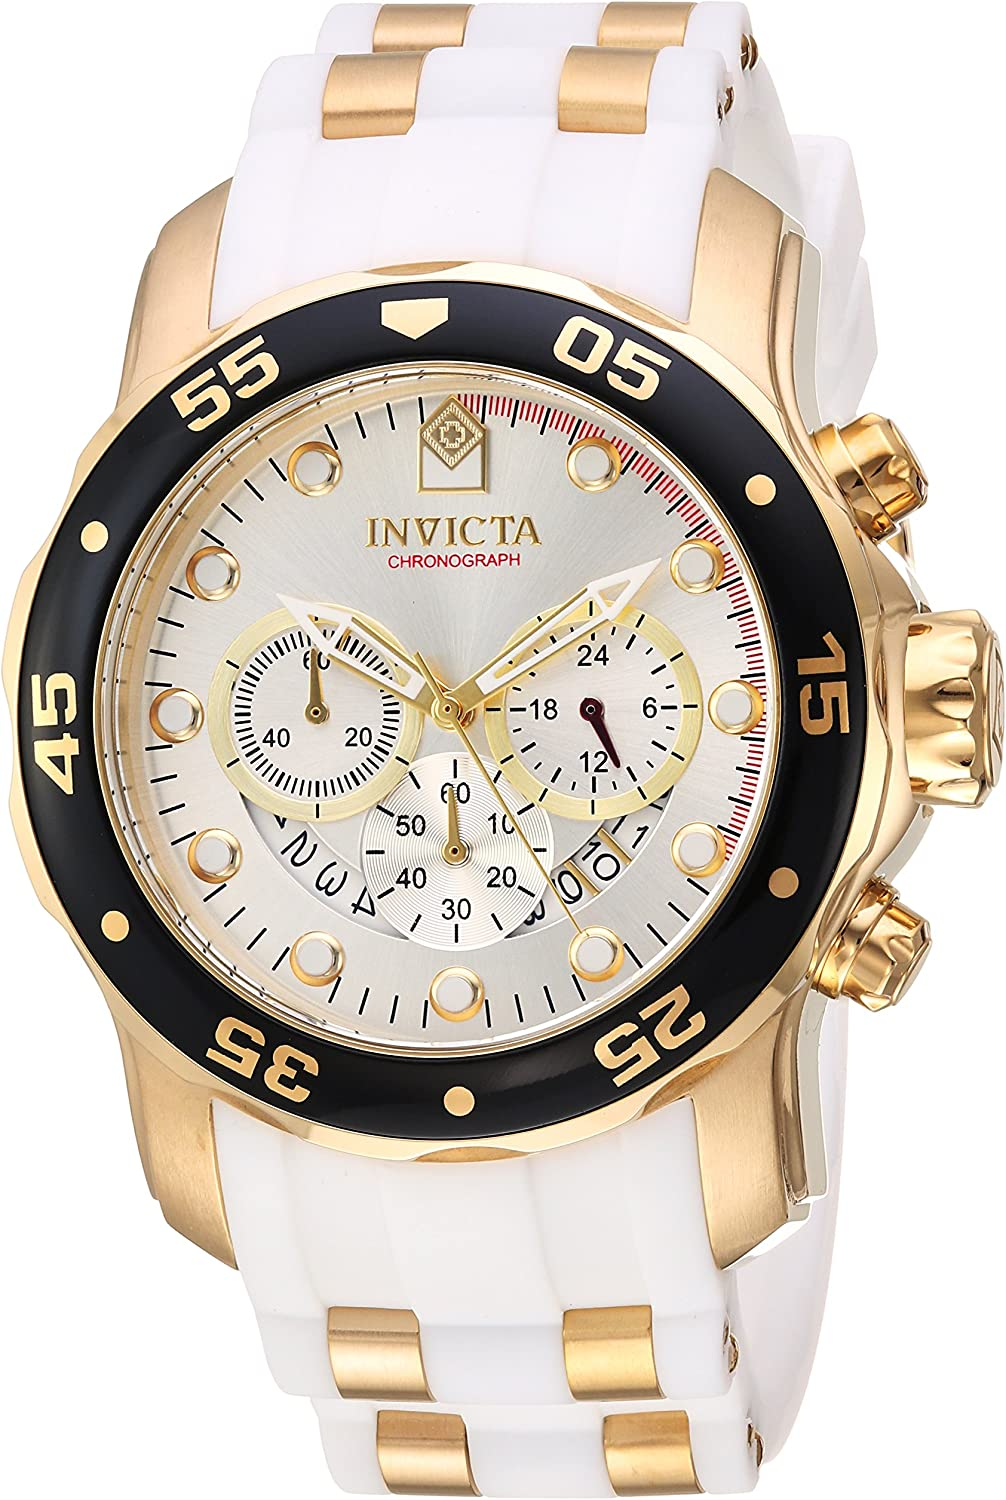 Invicta Men s Pro Diver Stainless Steel Quartz Watch with Silicone Strap, Two Tone, 1 Model 20292